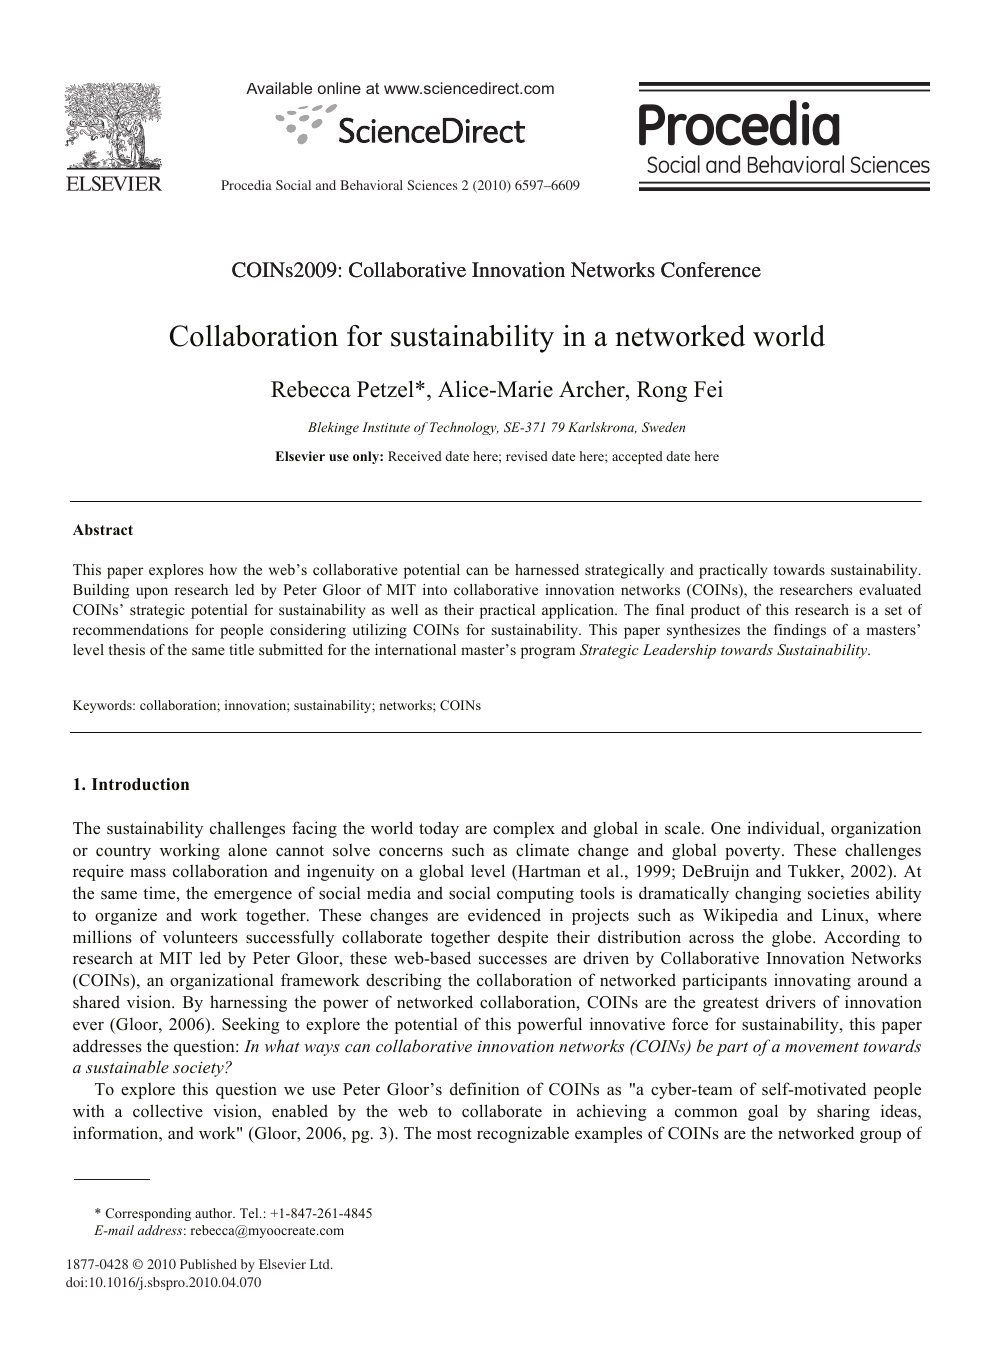 Collaboration For Sustainability In A Networked World Topic Of